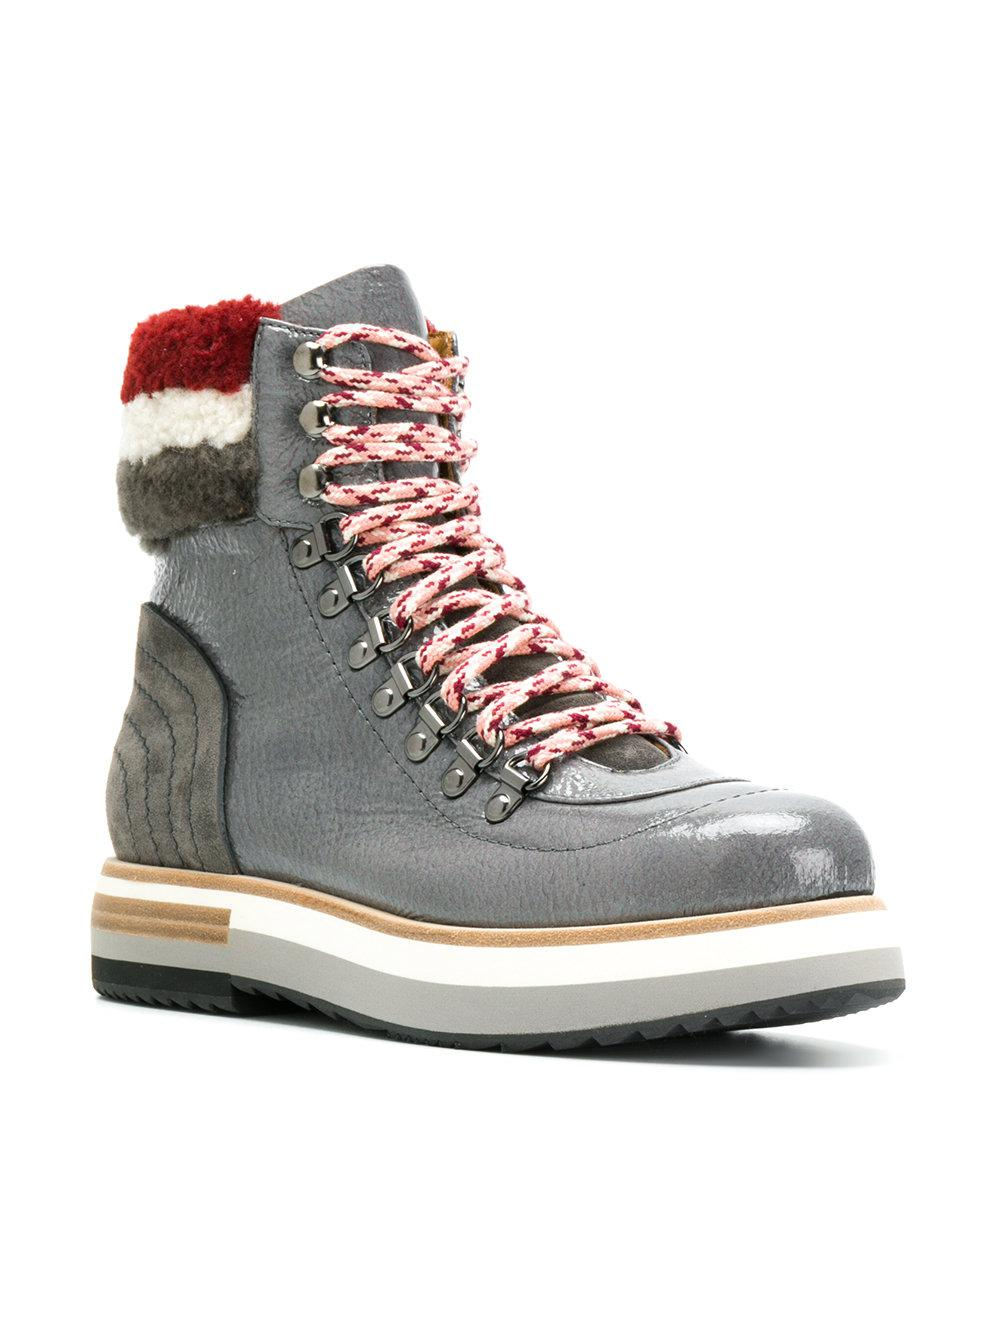 Fabi Leather Faux Shearling Trim Boots in Grey (Grey)